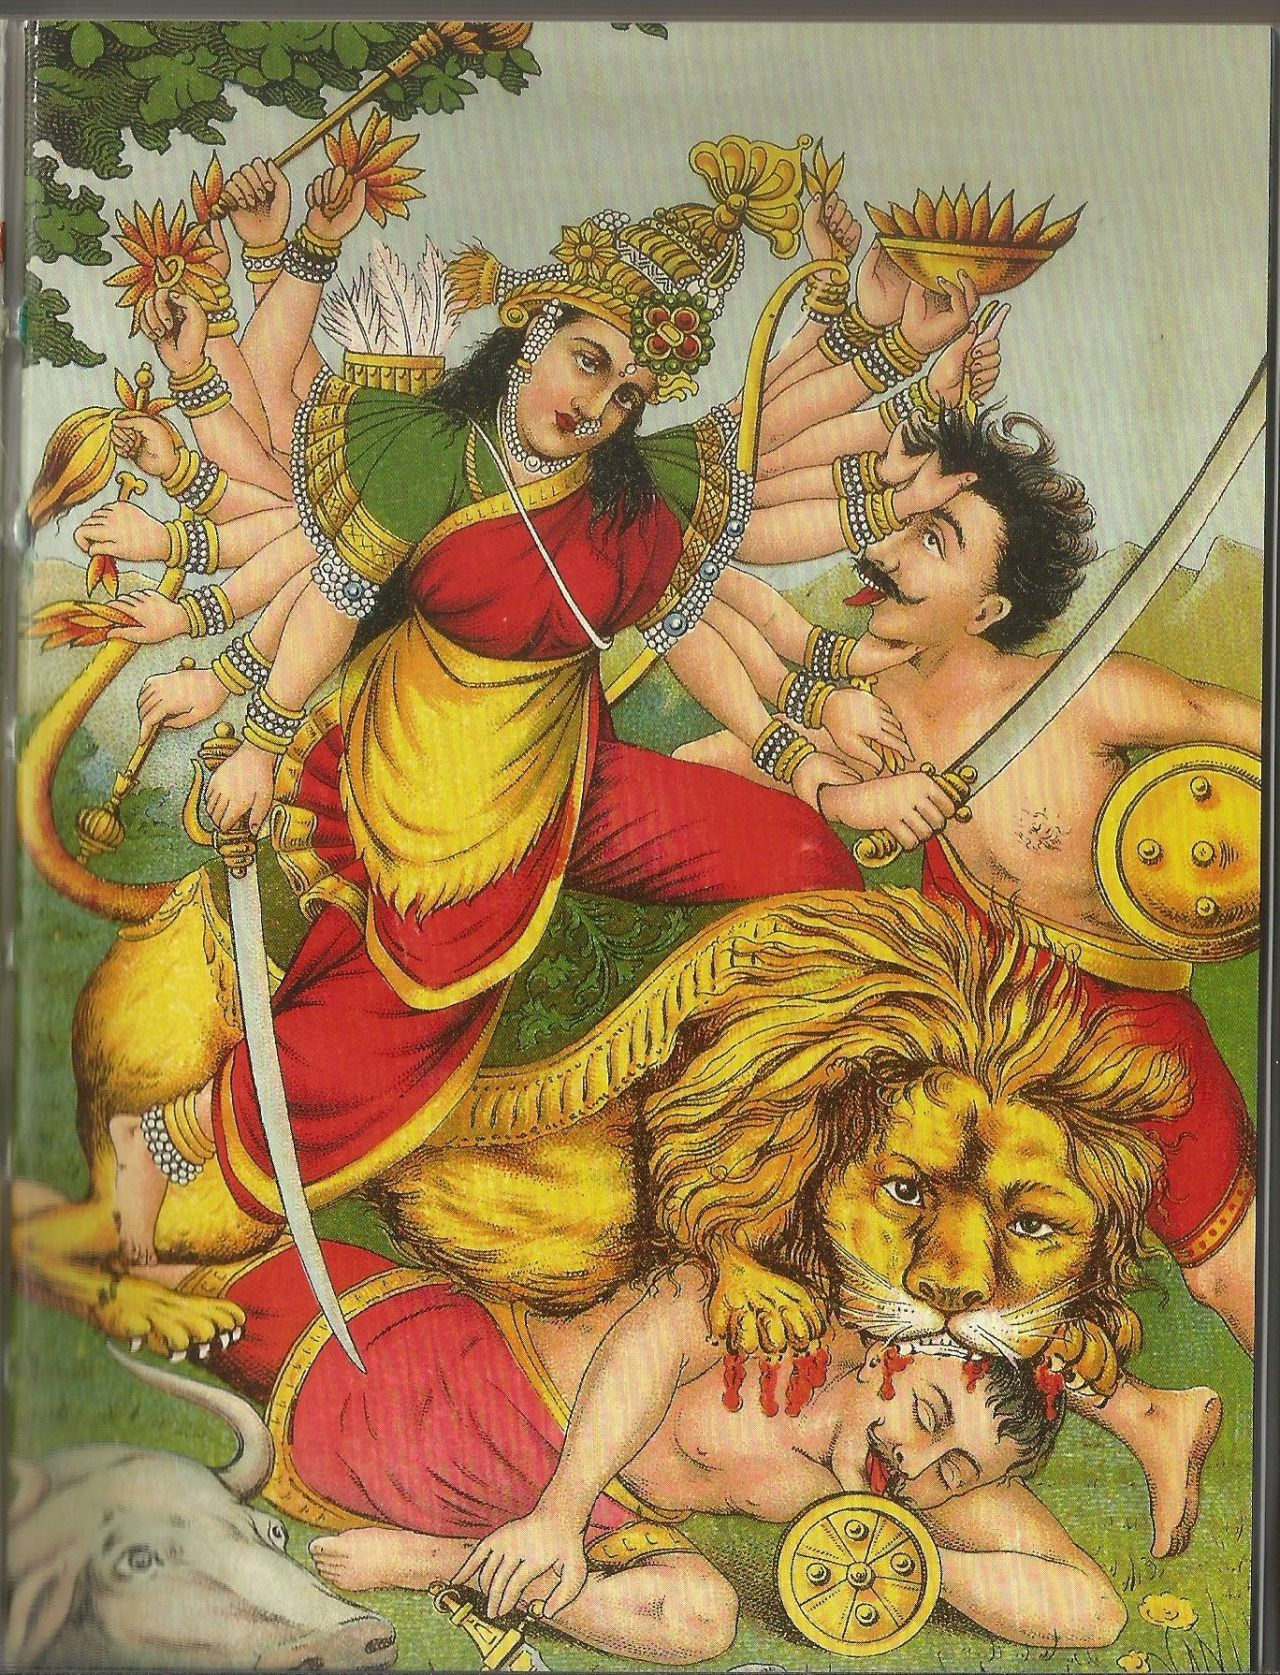 Devi Durga Mahisasuramardini Goddess Slayer Of The Buffalo Demon Popular Calendar Art Raja